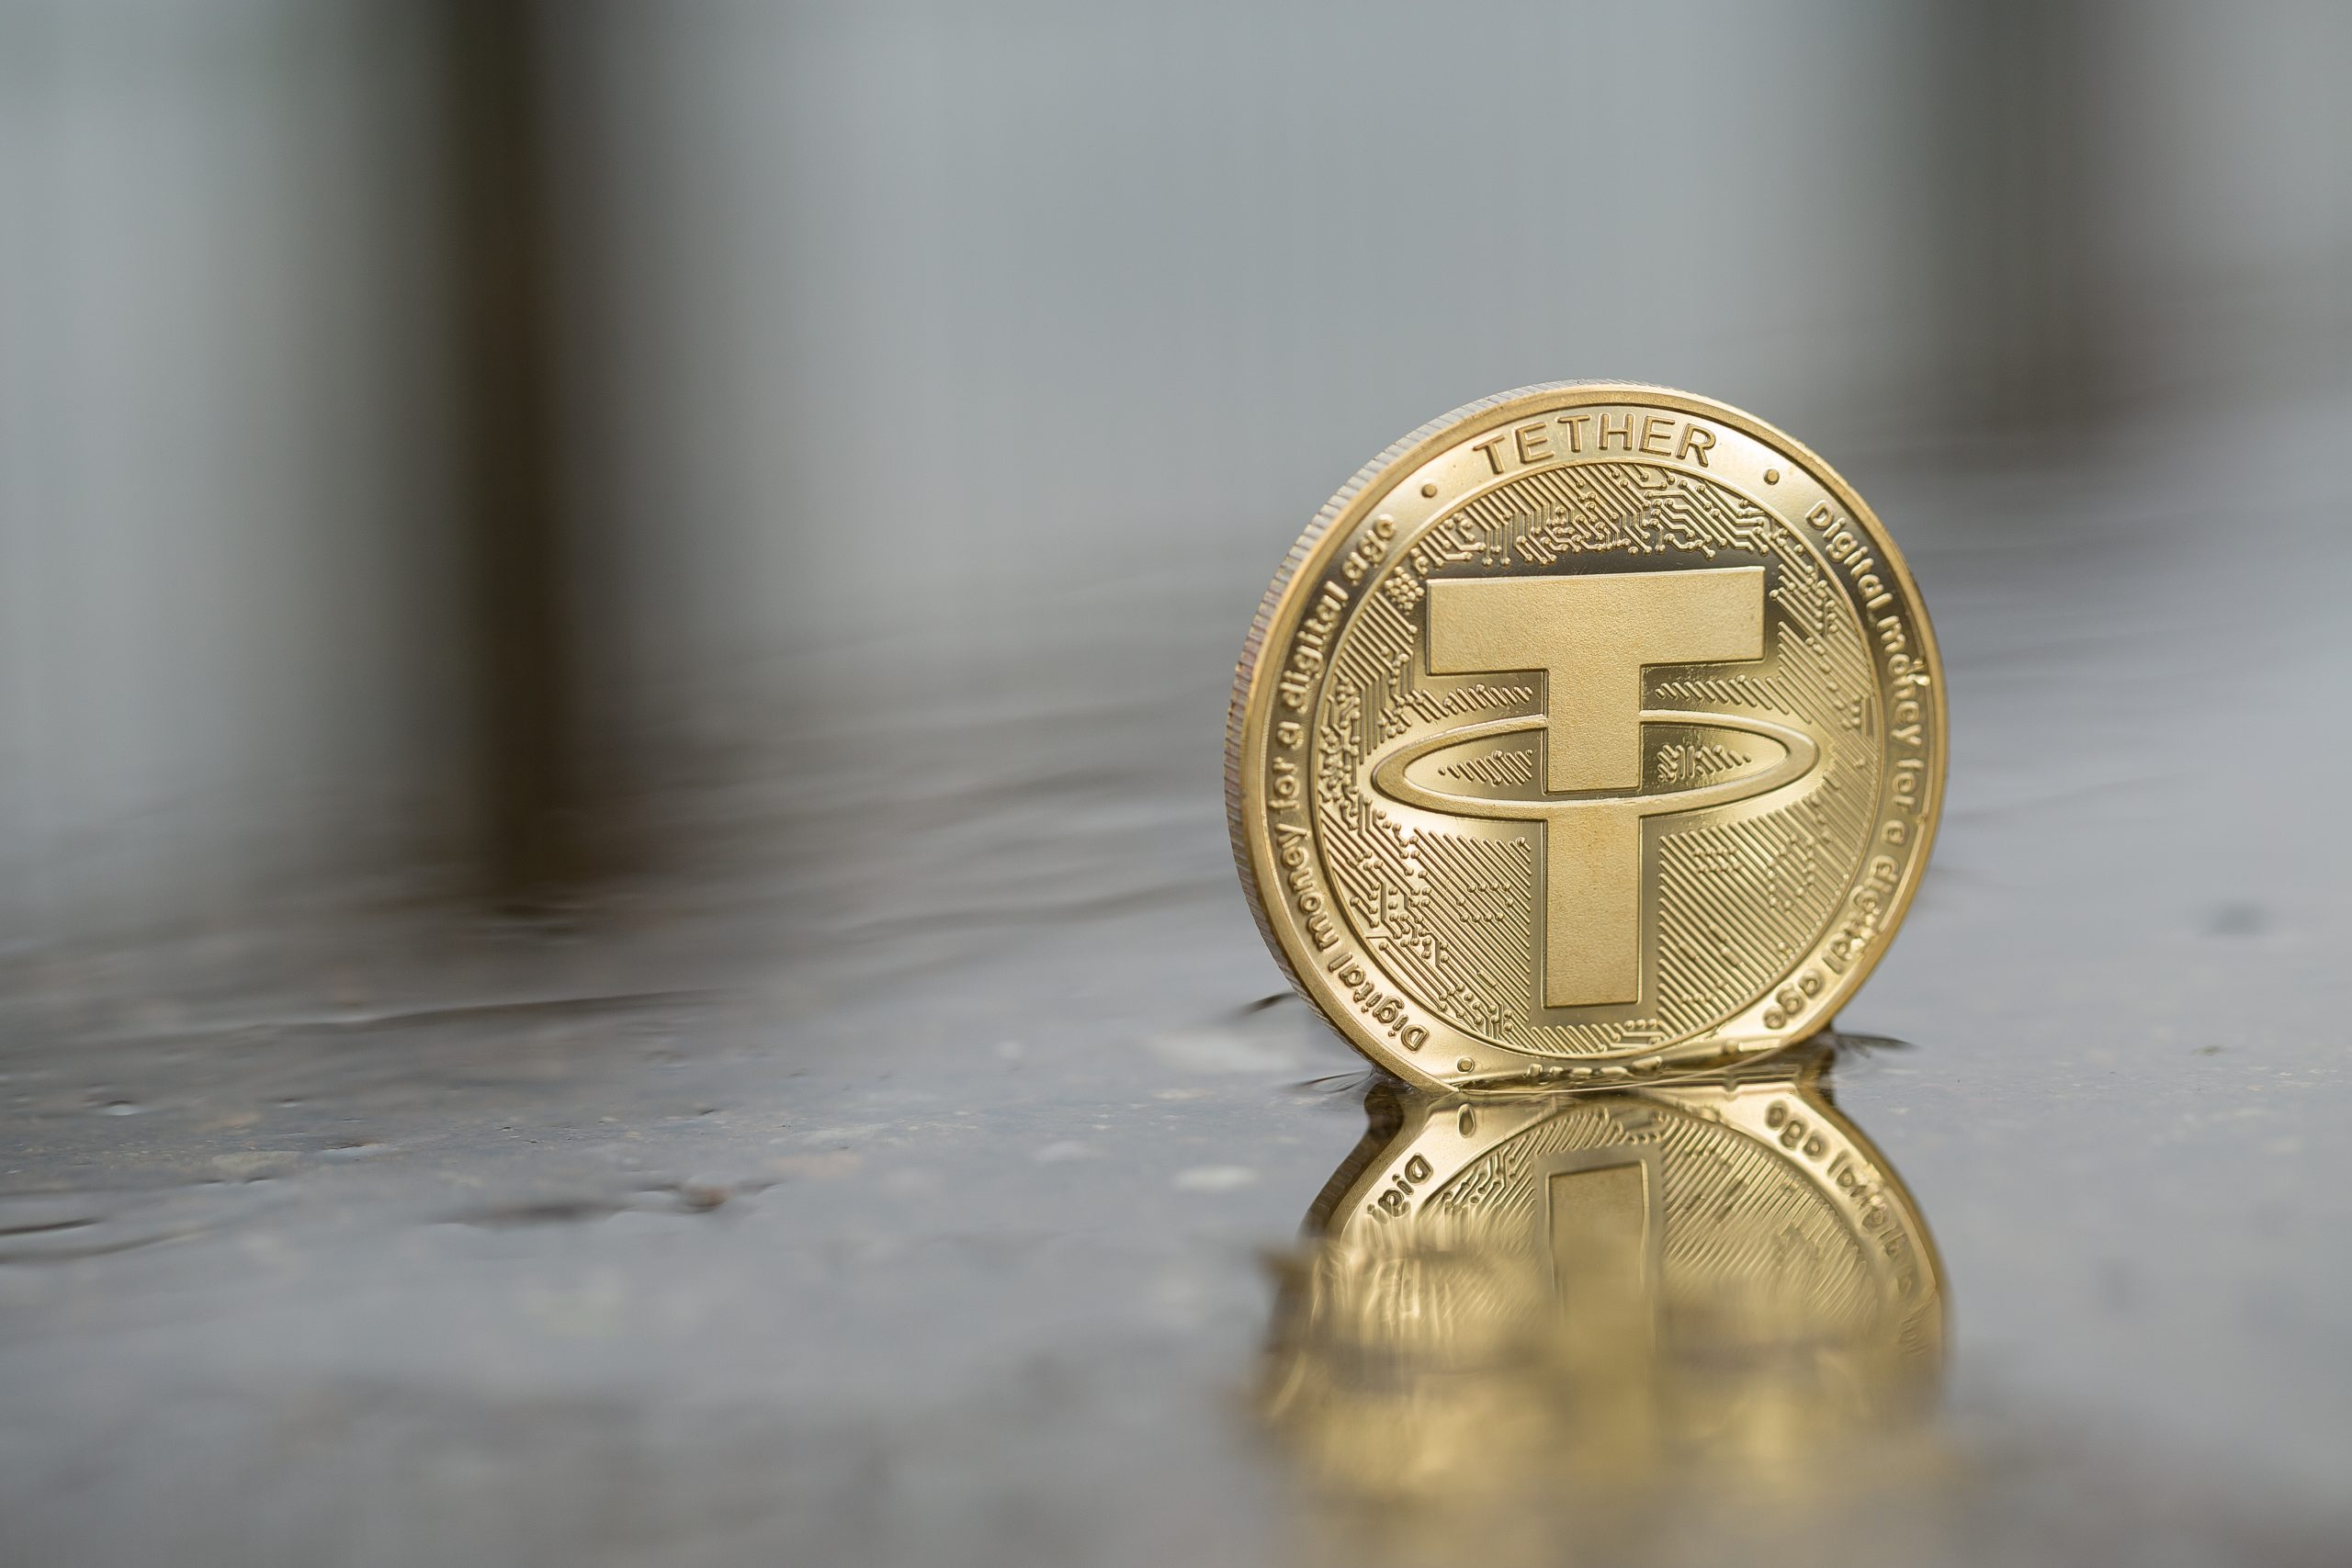 Is Tether Valid a Rip-off to Enrich Bitcoin Investors?